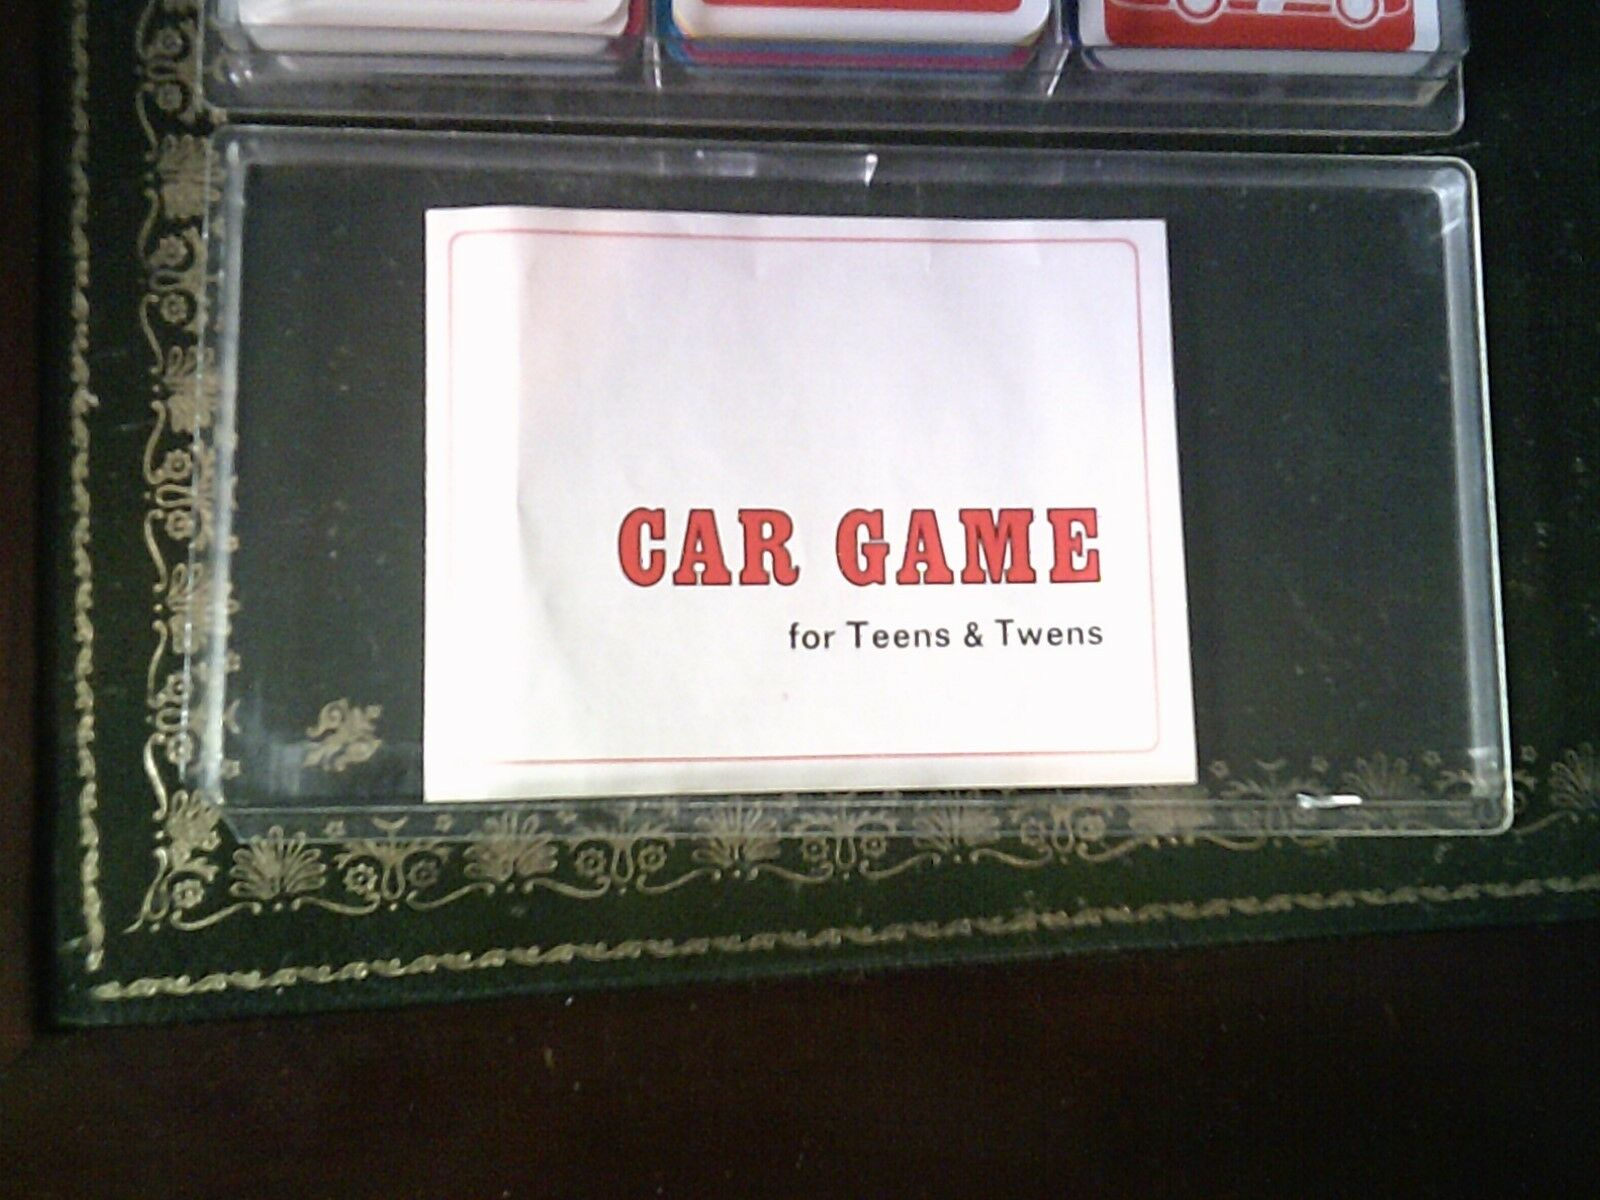 Car Card Vintage Game by Ace, Vintage Card Card Game 73e949